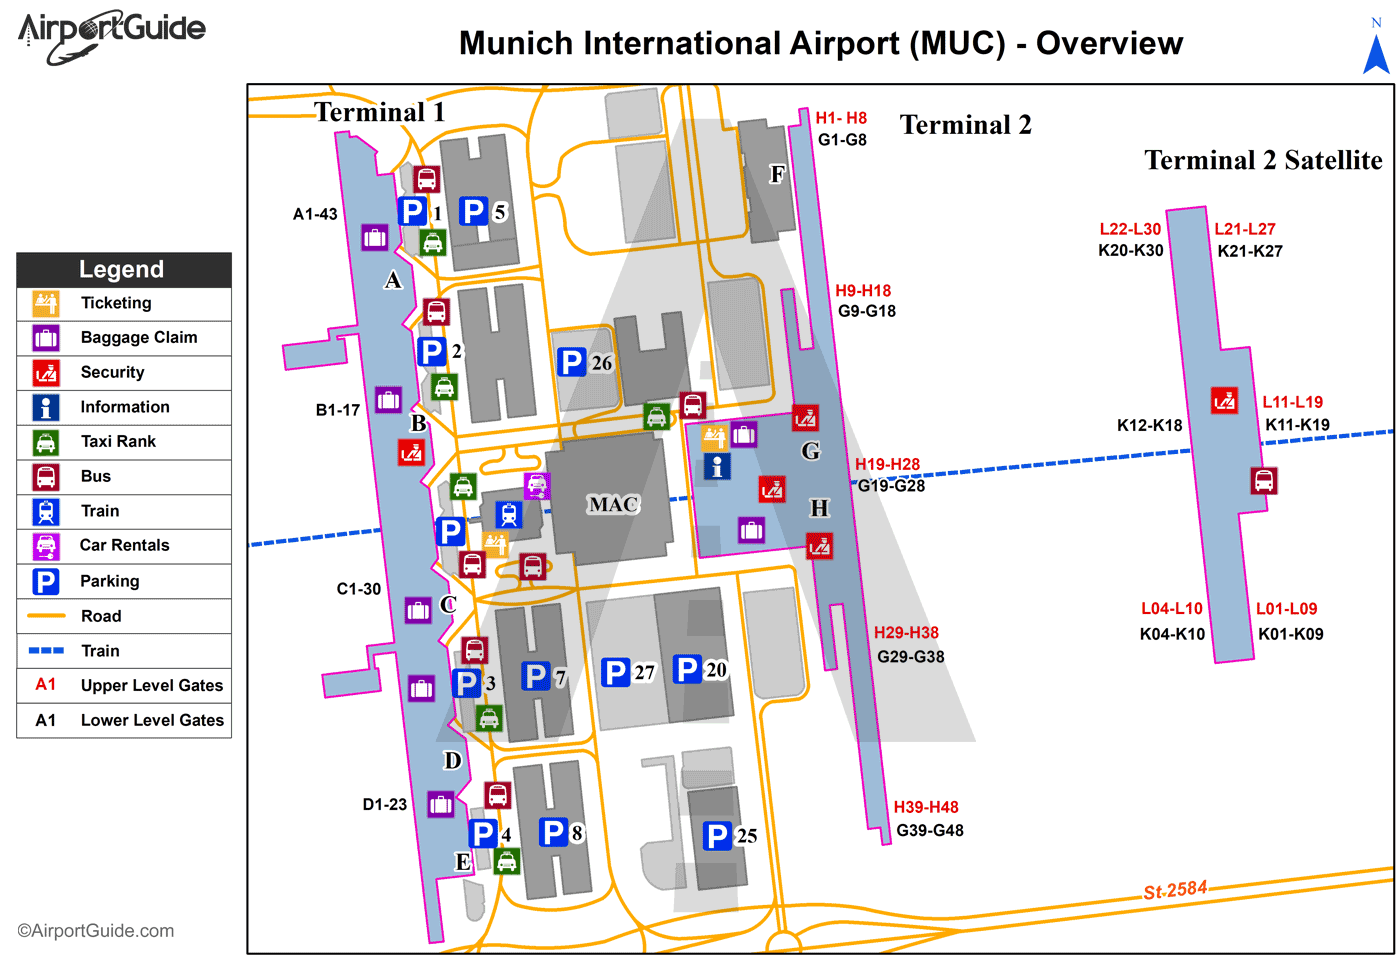 Munich - Munich International (MUC) Airport Terminal Map - Overview